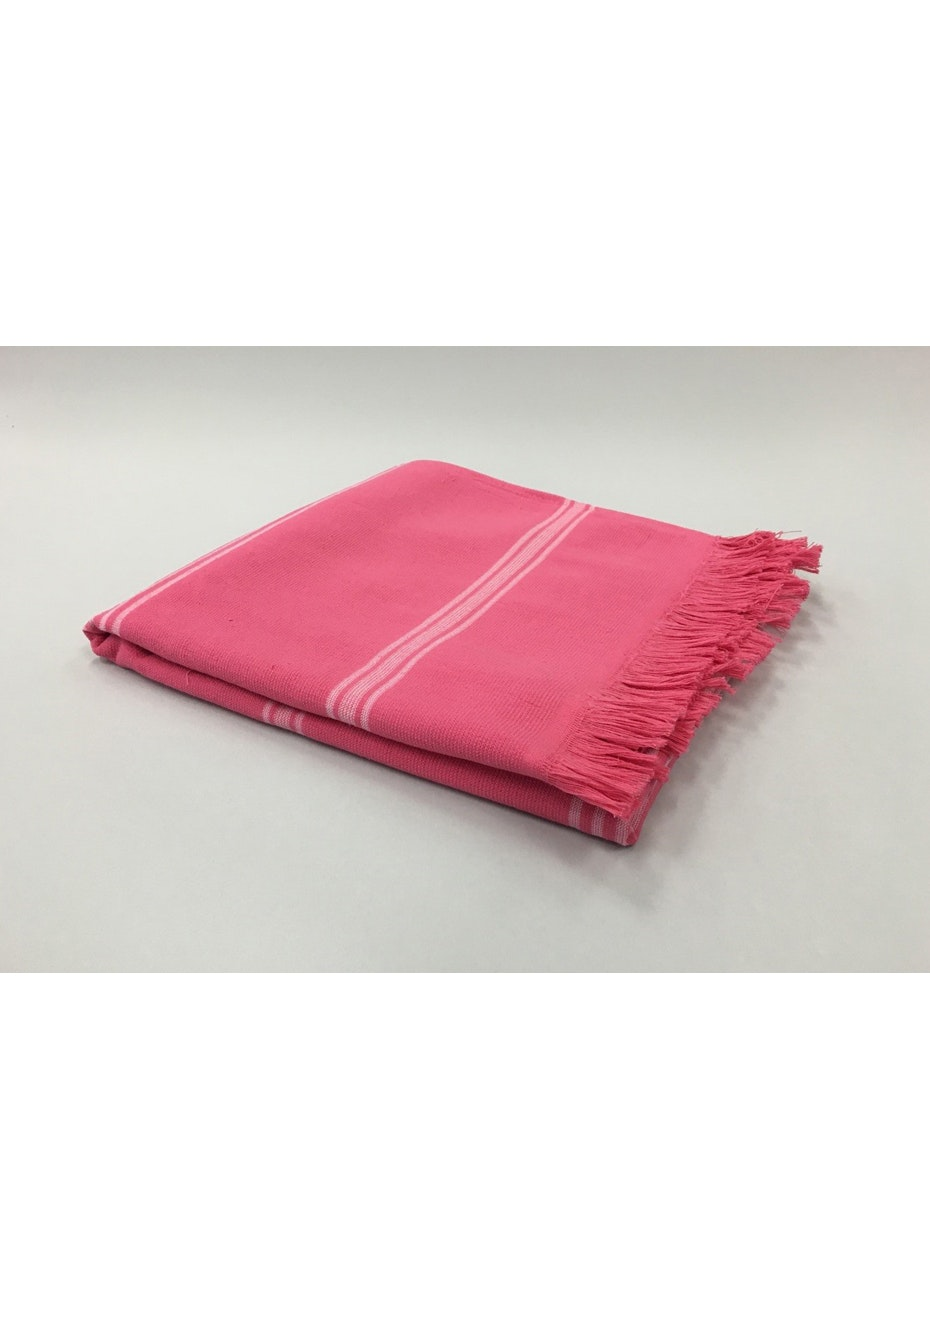 3 Pack Pink Cotton Turkish Towel